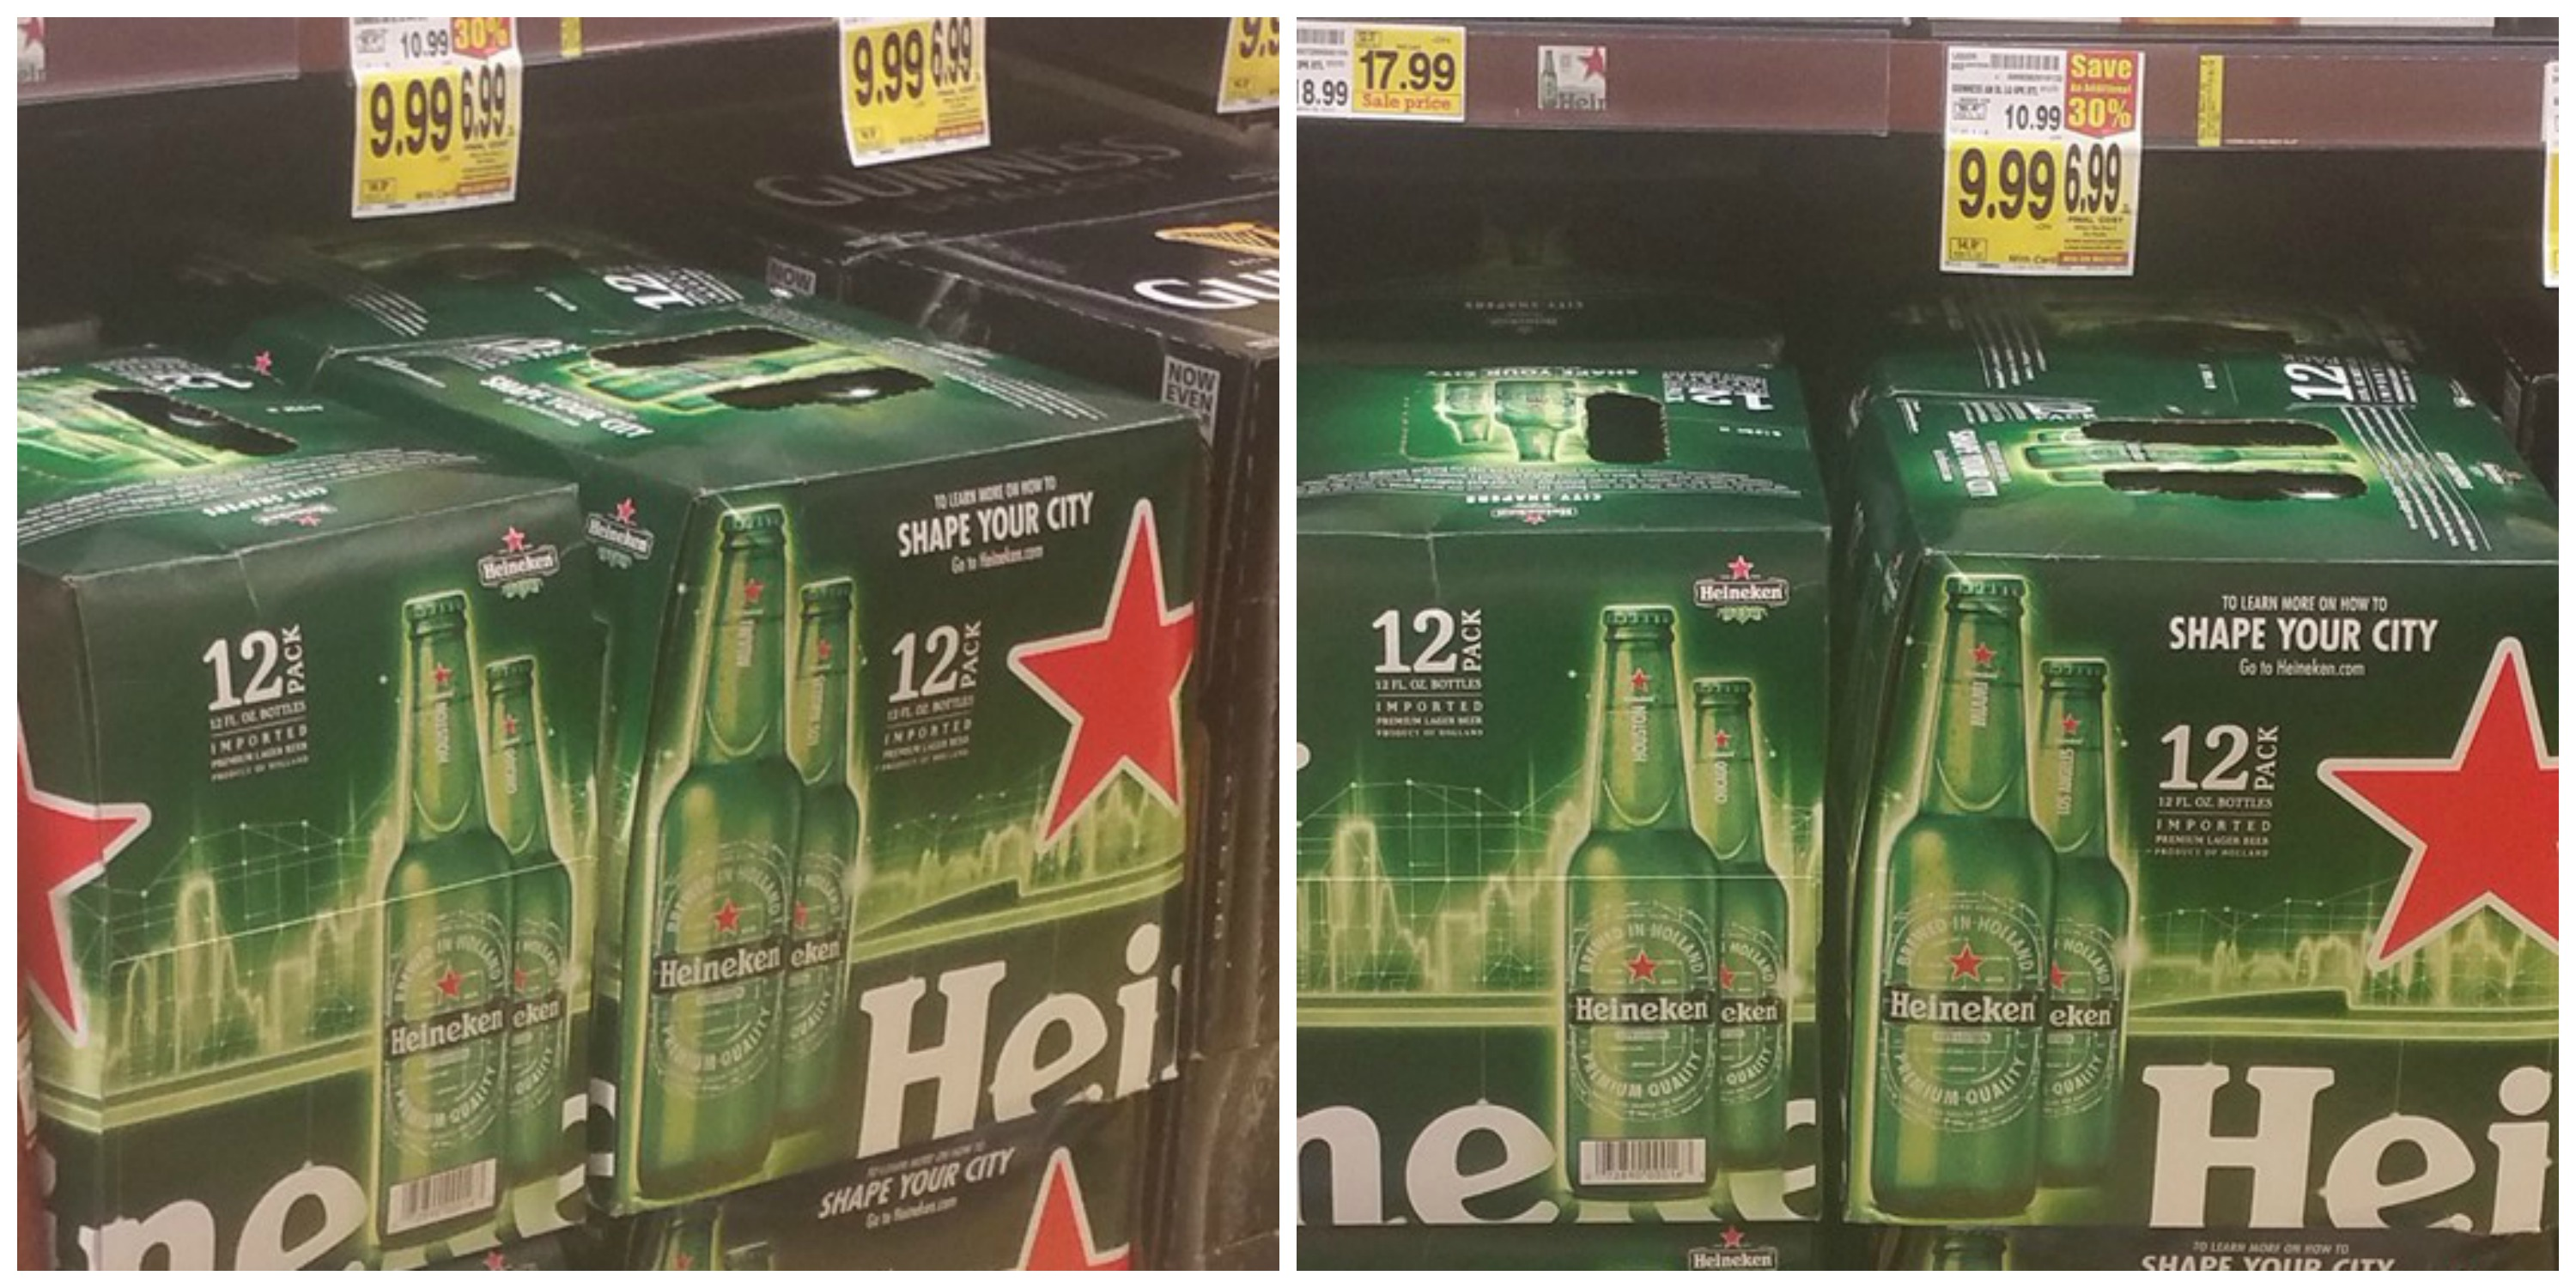 The Korean BBQ Kalbi starts with picking up a 12-pack of Heineken from your local store.